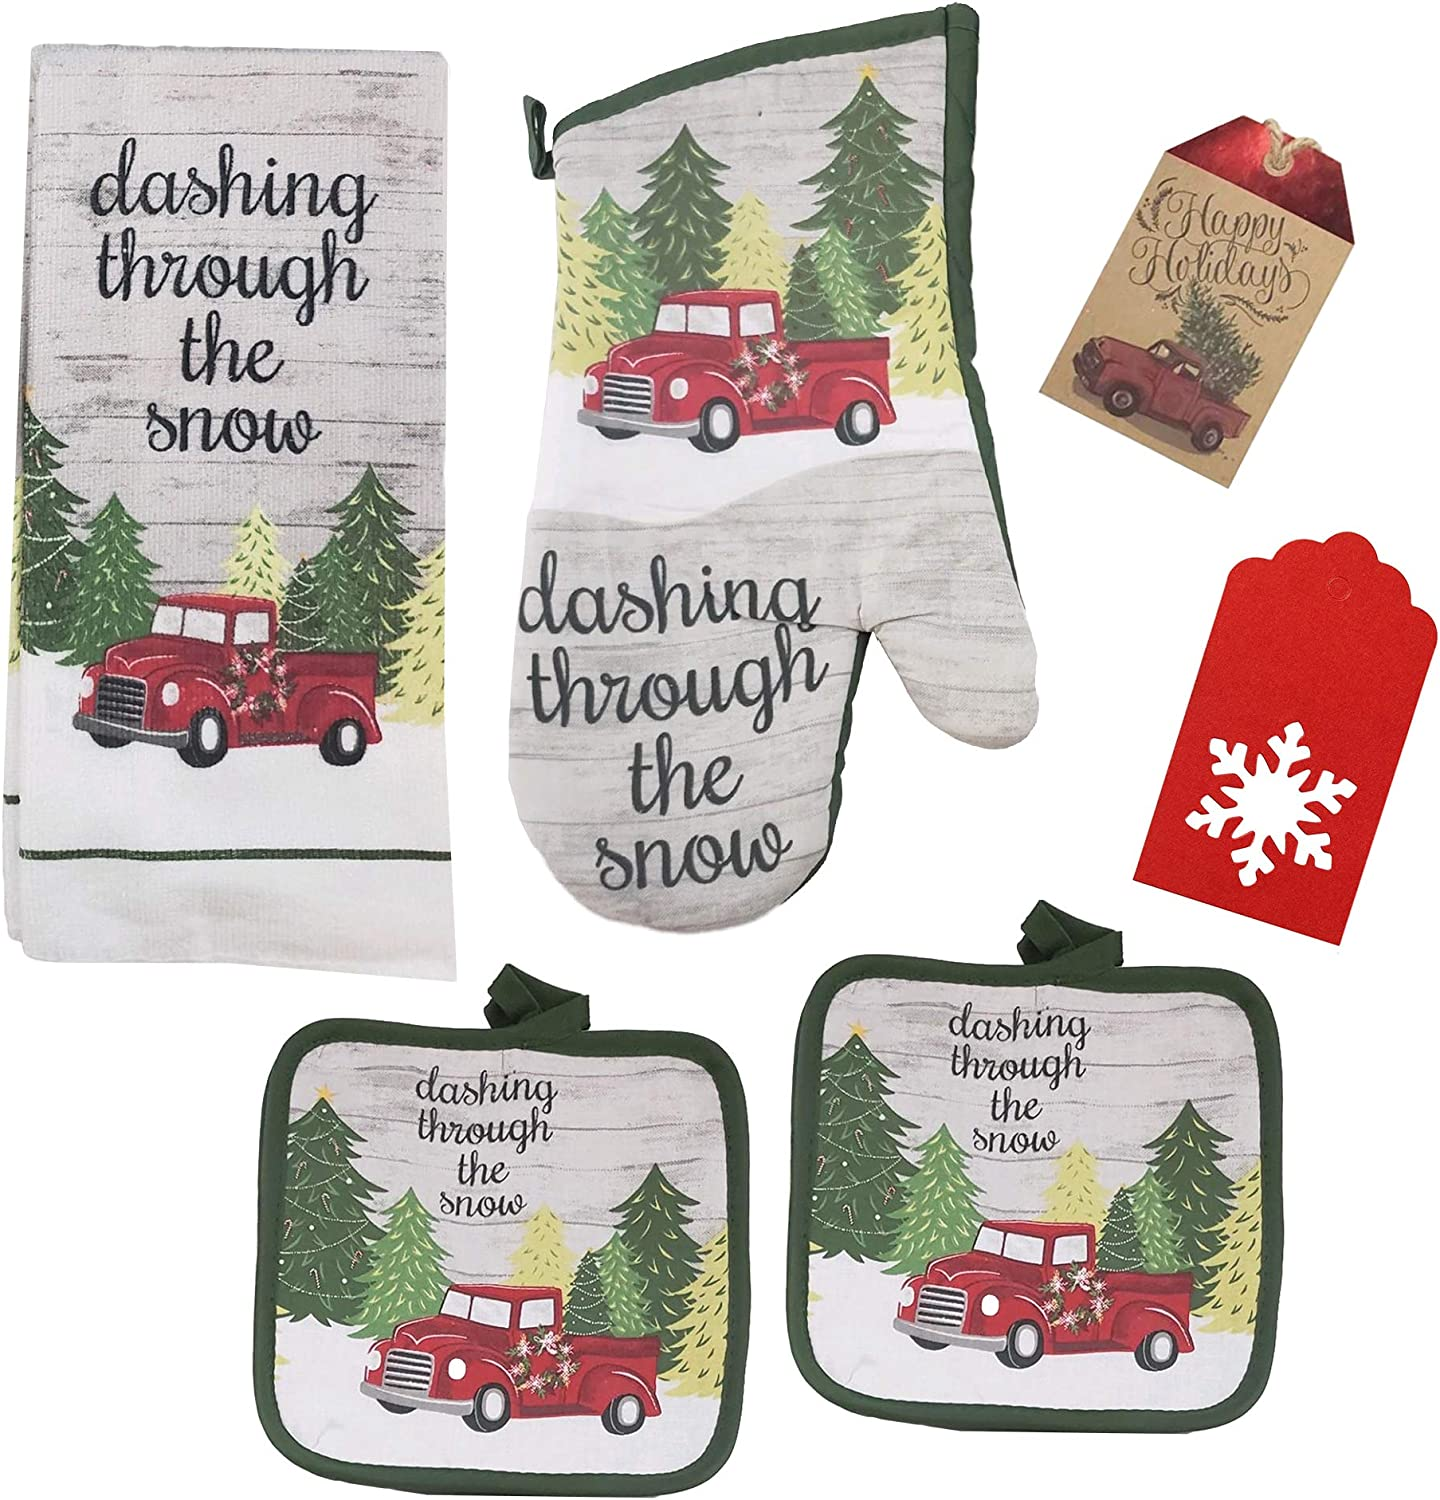 Christmas Kitchenware Set Including Hand Towel, Oven Mitts, Pot Holder, and Gift Tag. 6 Piece Gift Set (Retro Red Truck)